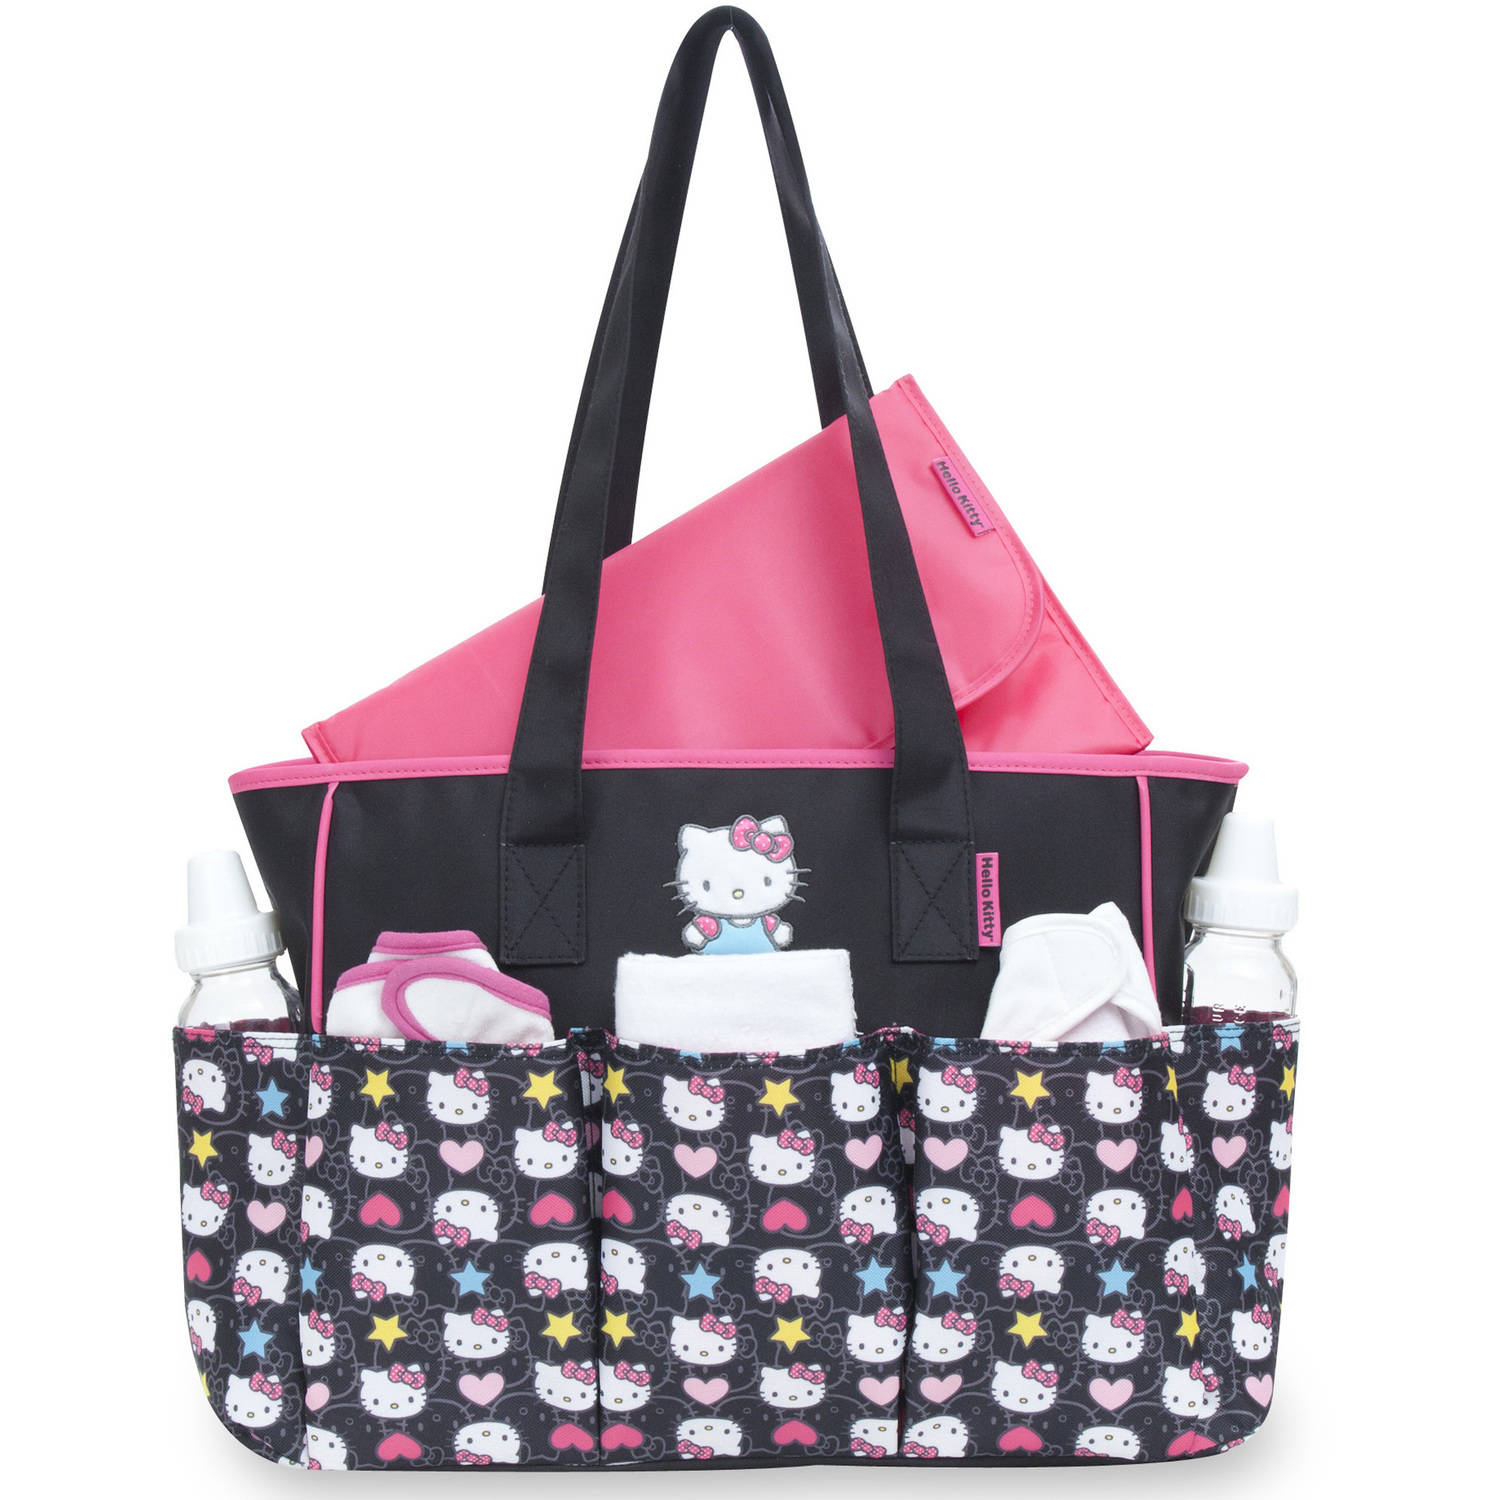 38021cf141e Hello Kitty Tote Diaper Bag - Walmart.com